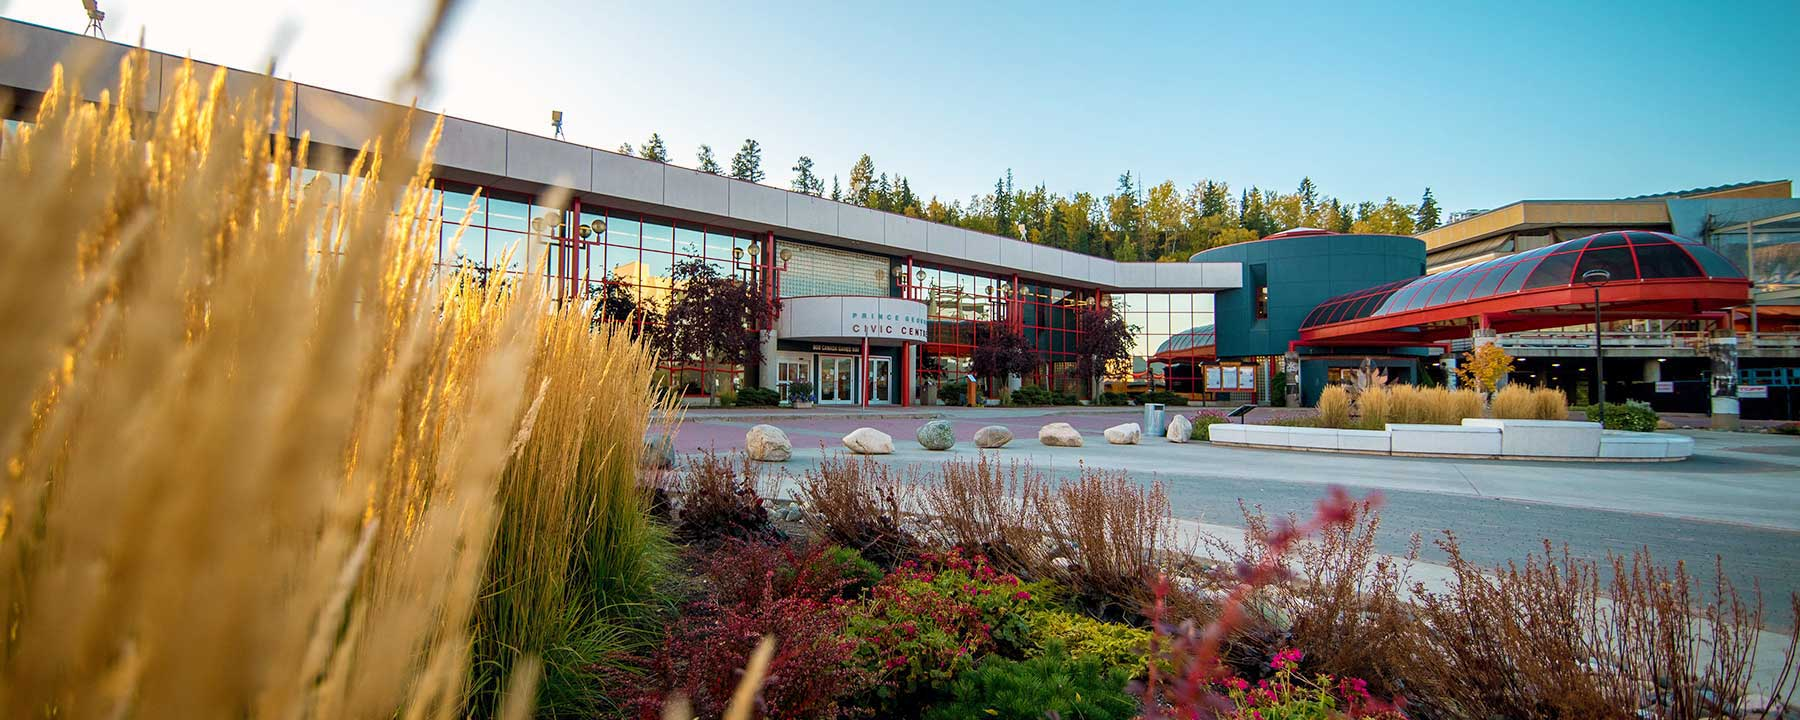 Exterior photo of the Prince George Conference and Civic Centre